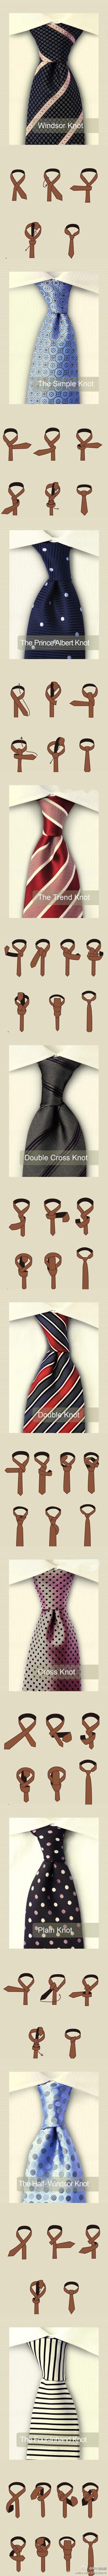 Ties! That's useful: Idea, Tie Tying, Tie A Tie, Necktie, Tie Knots, Boy